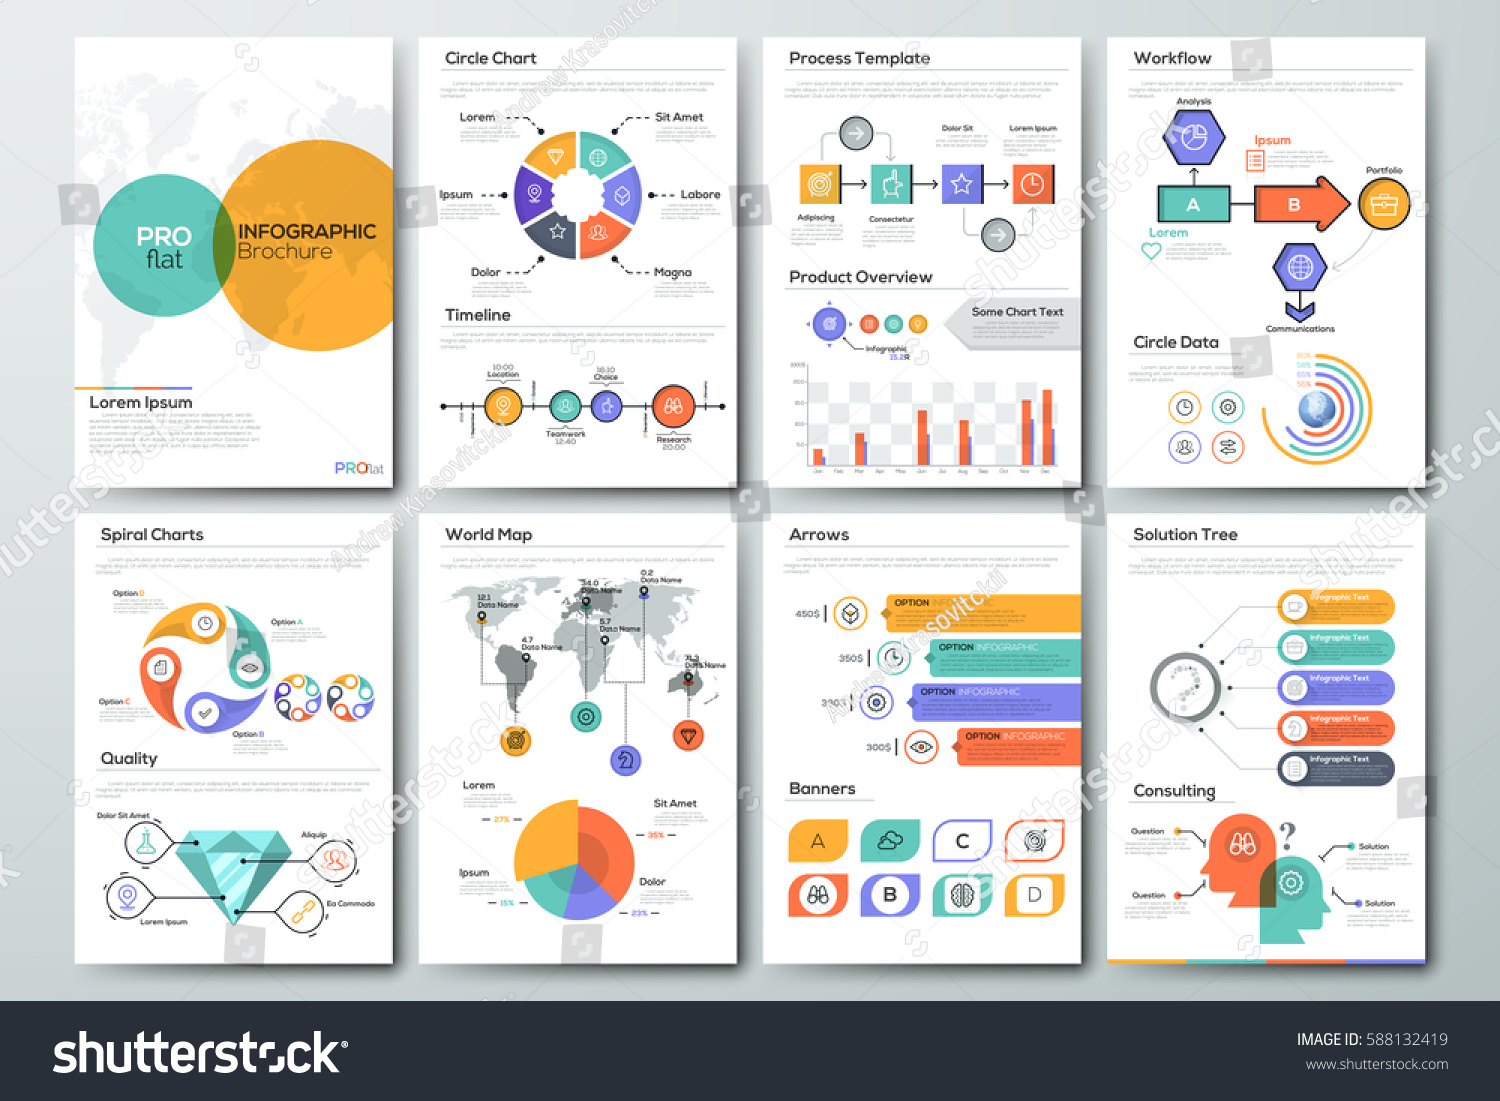 Drawing diagrams in pages - Modern Infographic Brochure Template Pages With Diagram Graph Chart And Workflow Elements